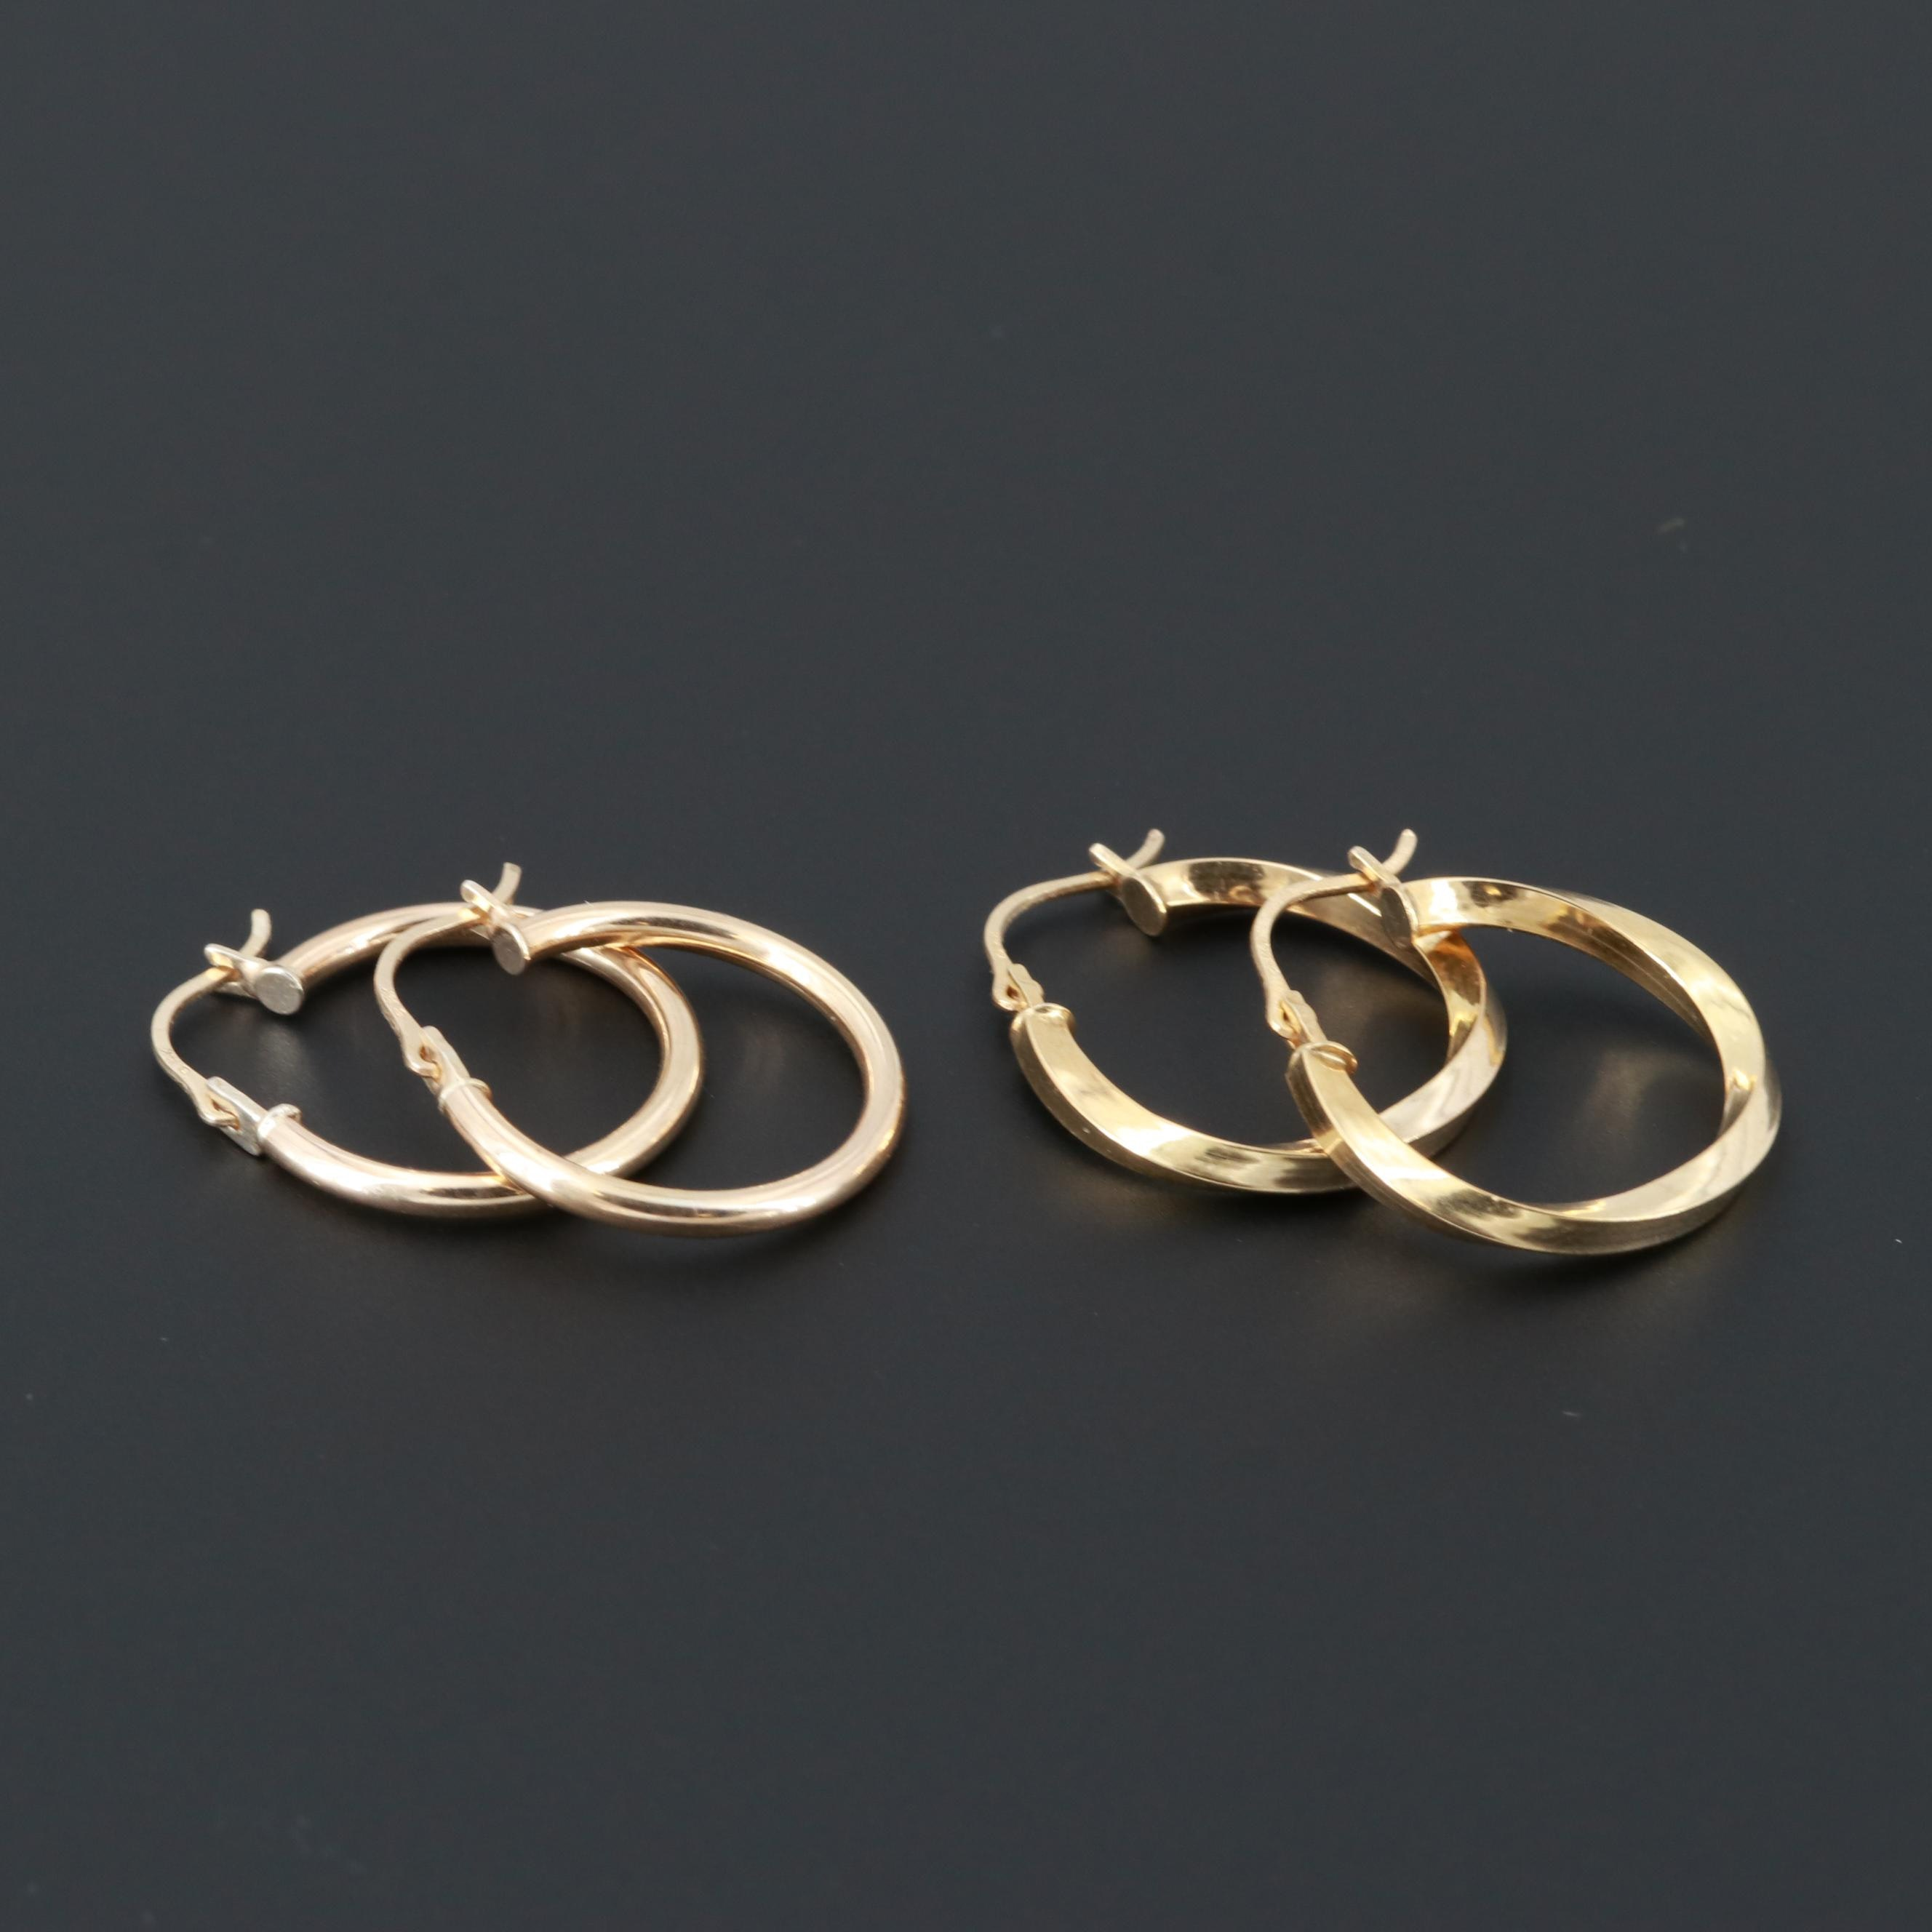 Gold Tone Hoop Earrings with 14K Yellow Gold Wires